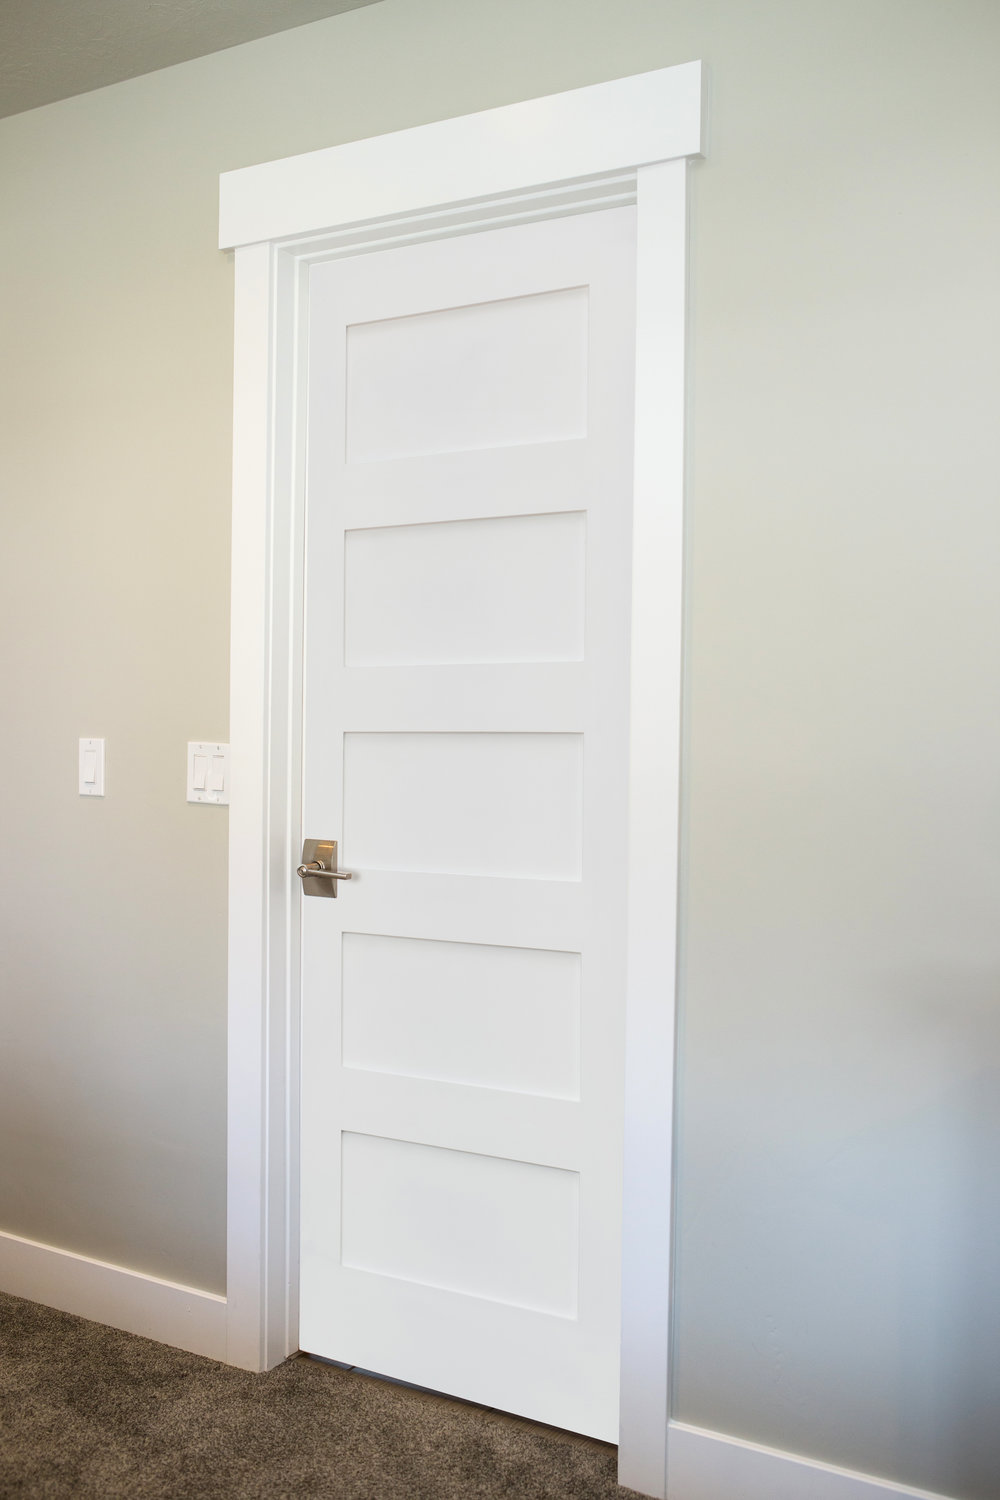 Charmant 5 Panel Shaker Primed Solid Core MDF Interior Door. Shaker_5 Panel_1  Shaker_5 Panel_2 ...